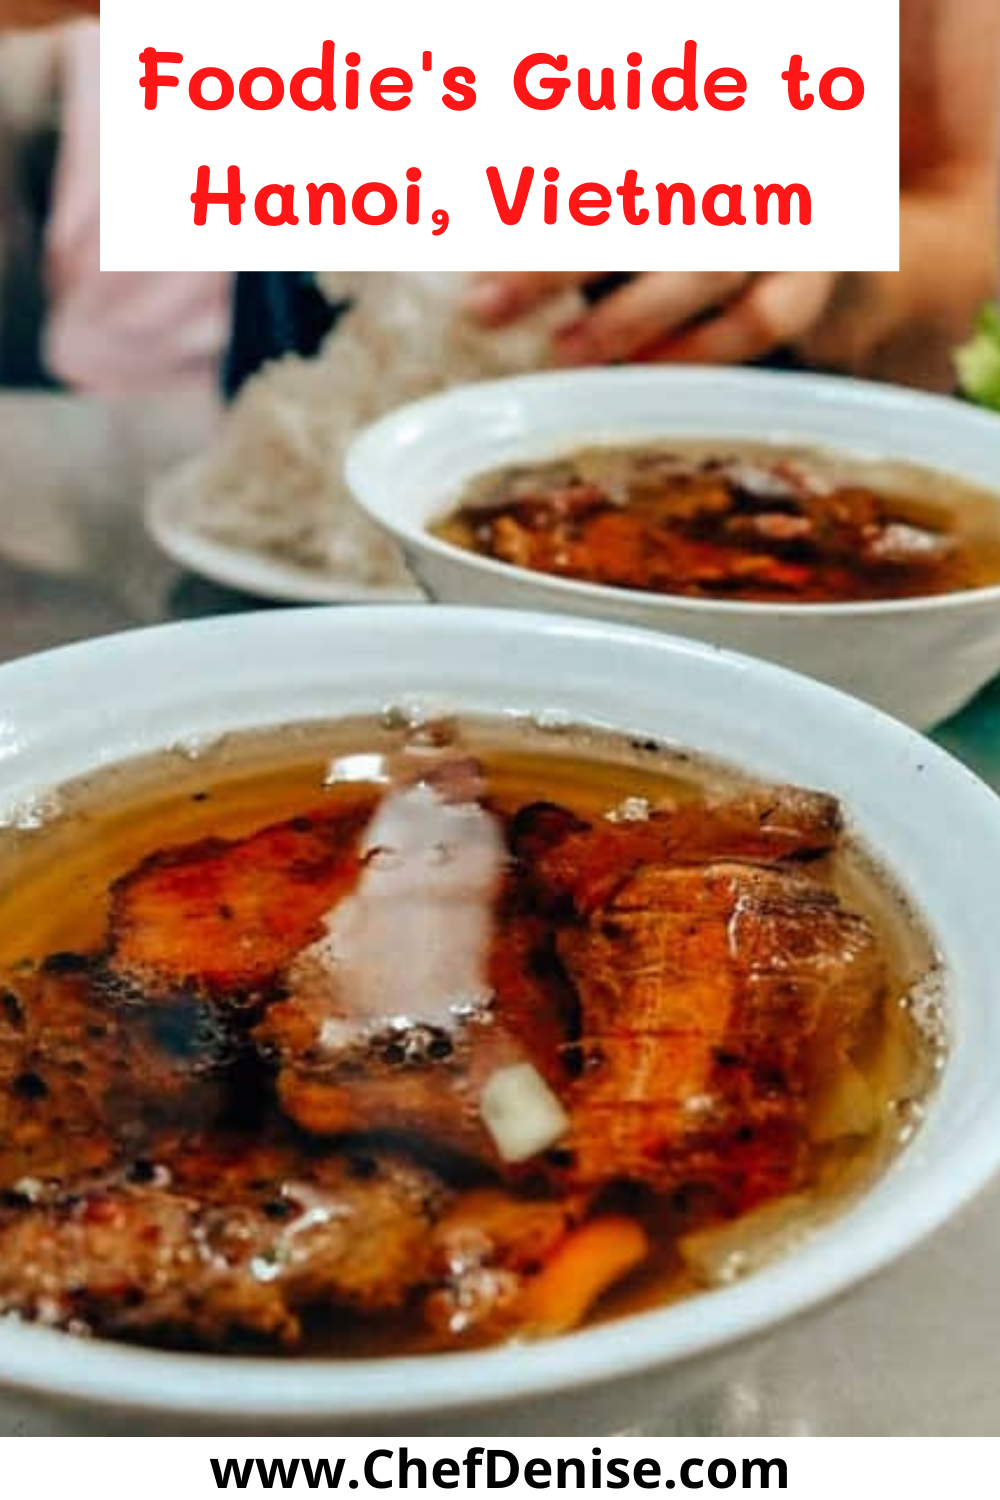 Pin for Foodie's guide to Vietnamese food in Hanoi